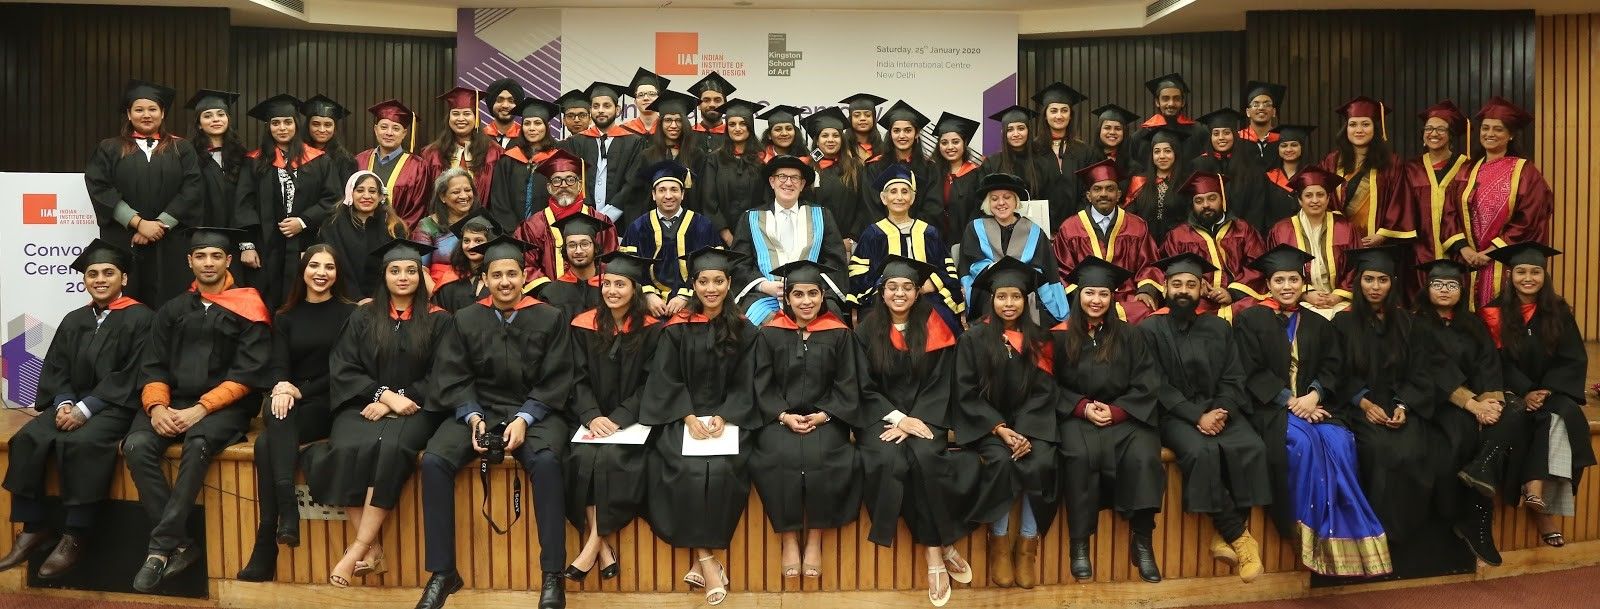 IIAD's First Convocation Ceremony